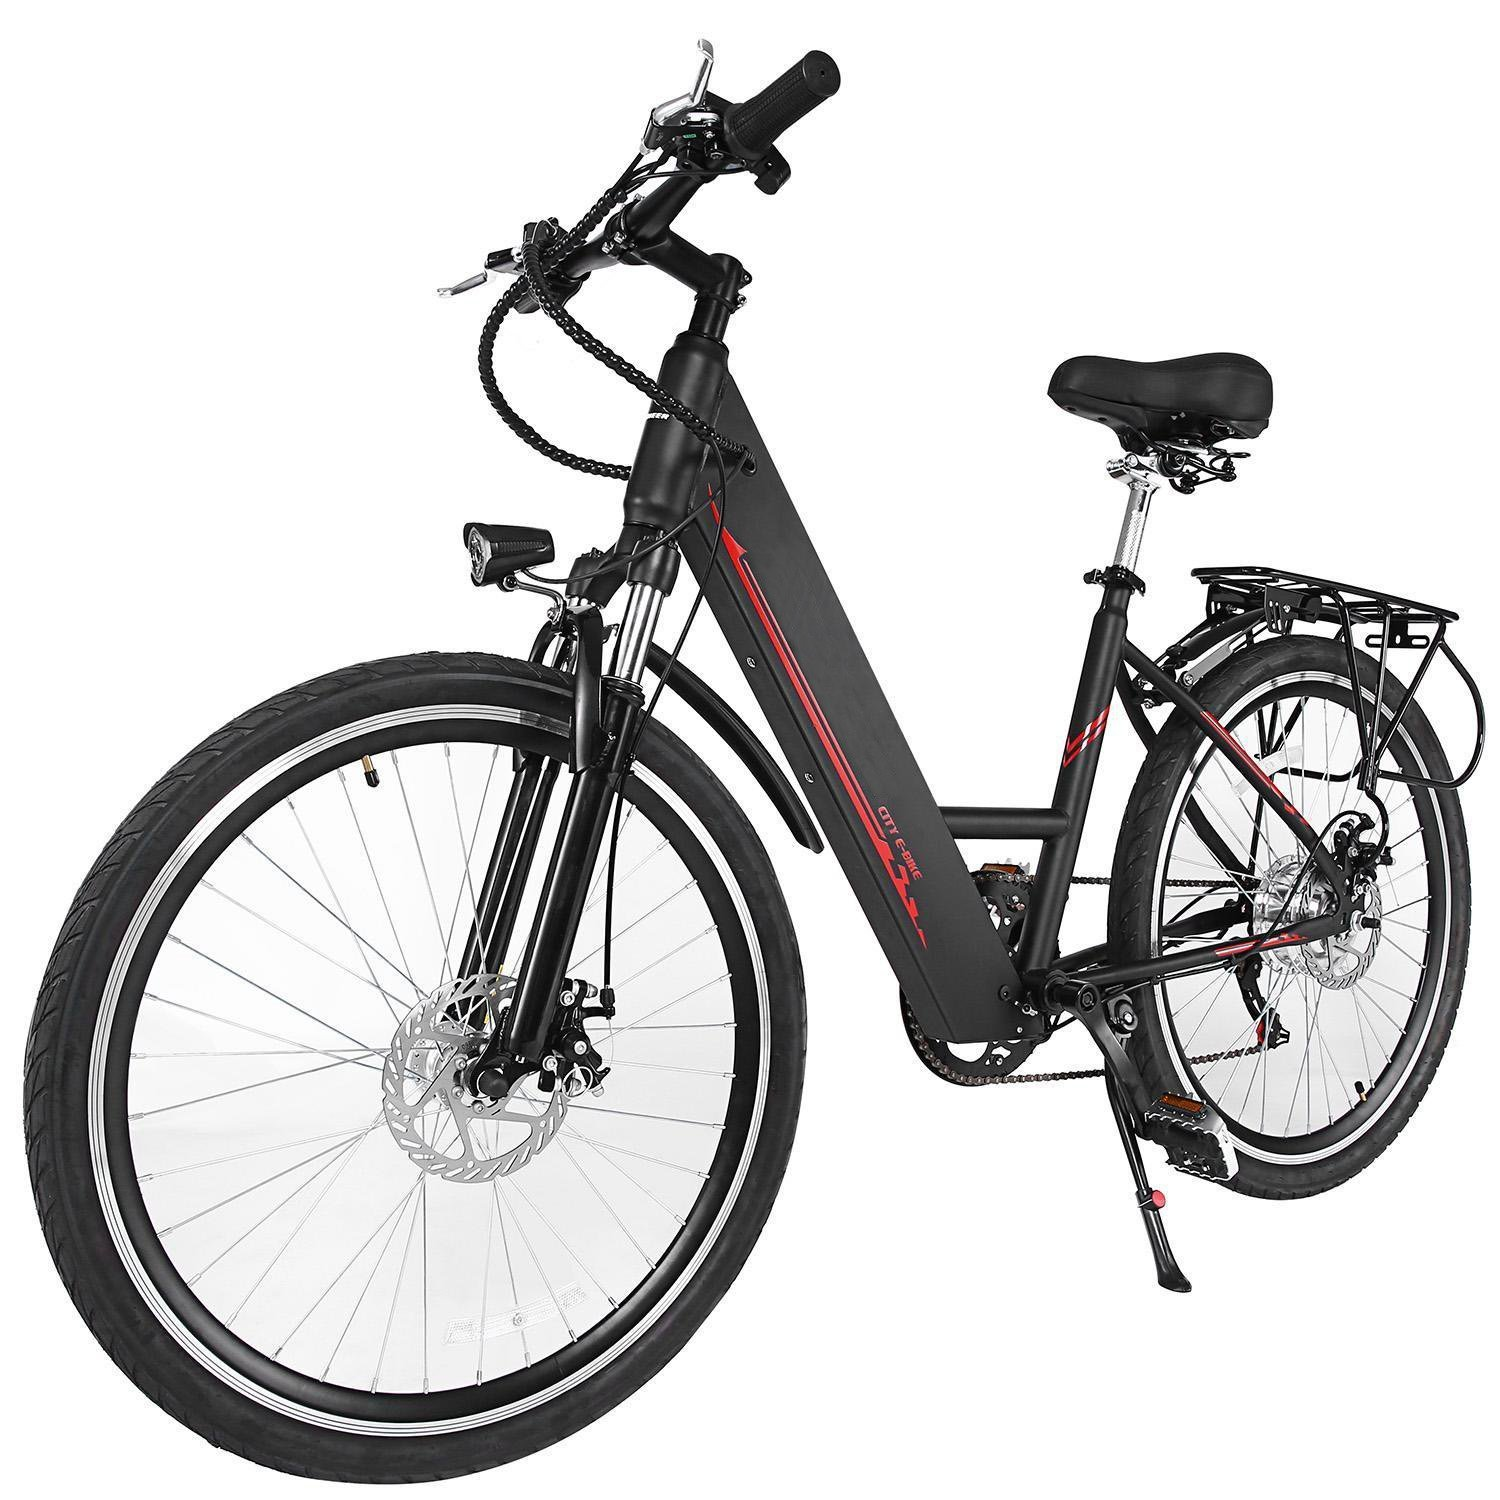 Benlet 26 Inch 36V 6-Speed Unsex Folding Outdoor Mountain Electric Bike, Outdoor Sports E-Bike with Aluminum Alloy Frame and Handlebar Display (Black)